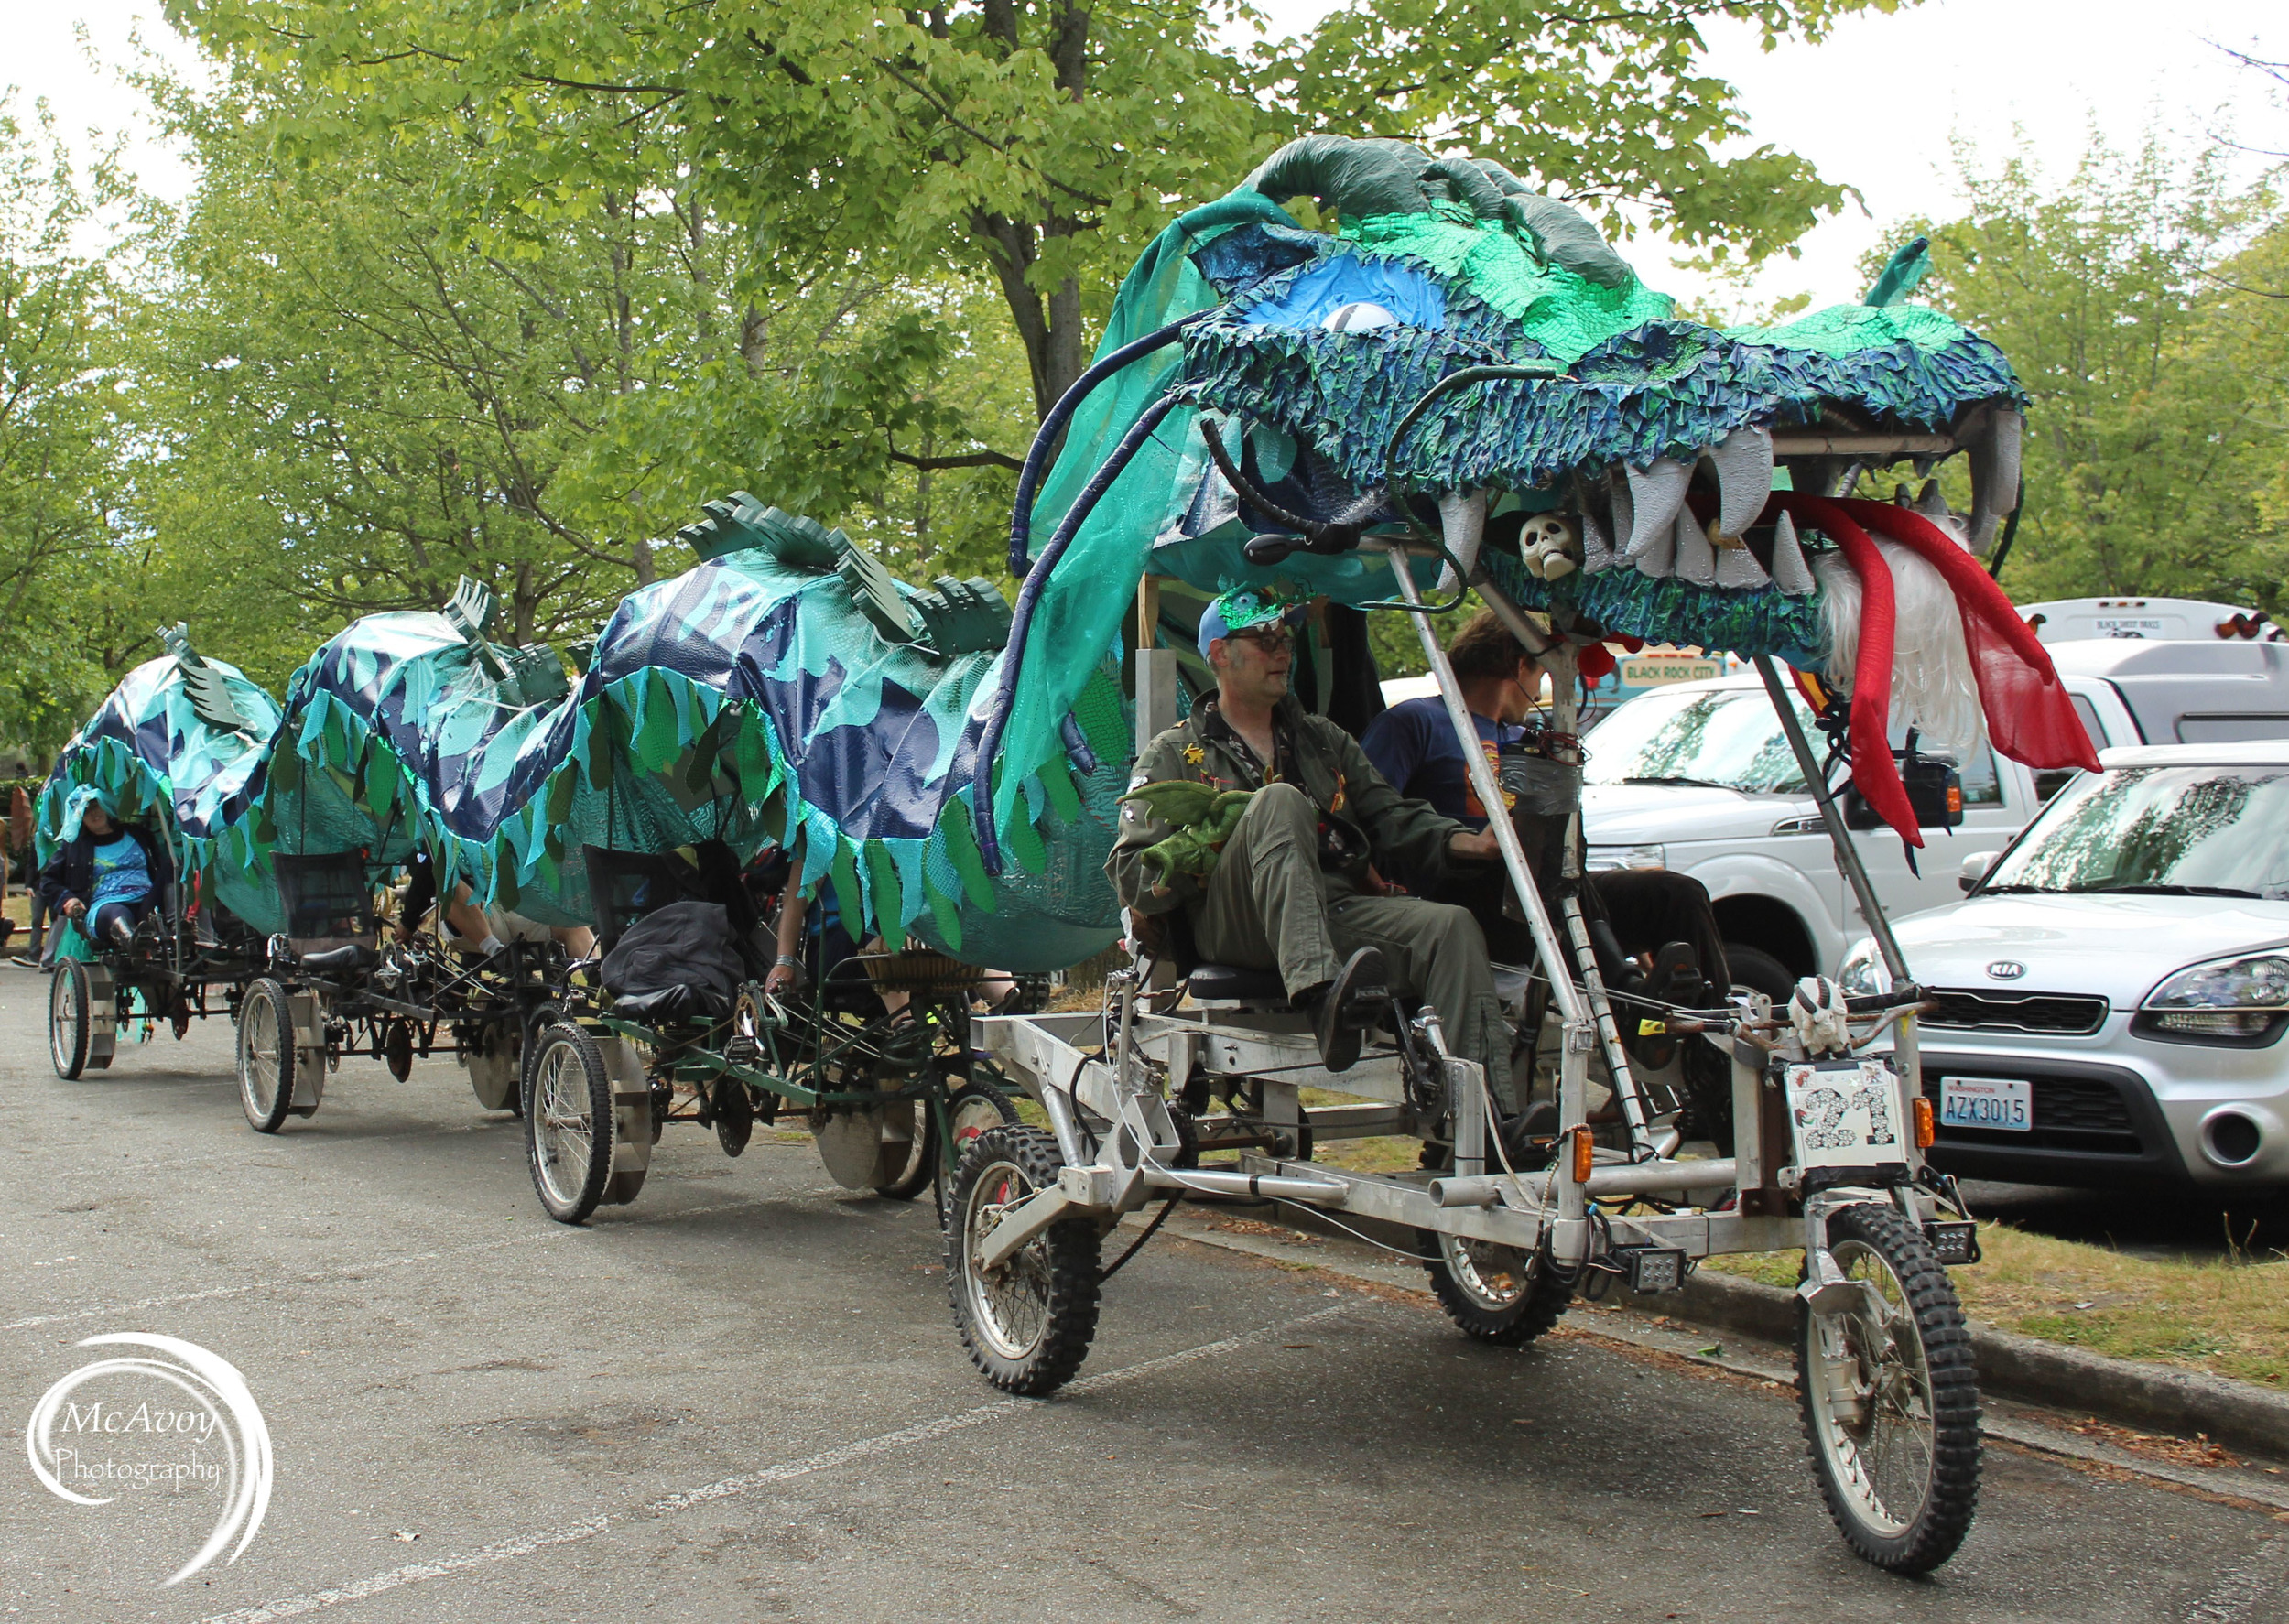 The Fremont Solstice parade has a long tradition of no logos, words or motorized vehicles.